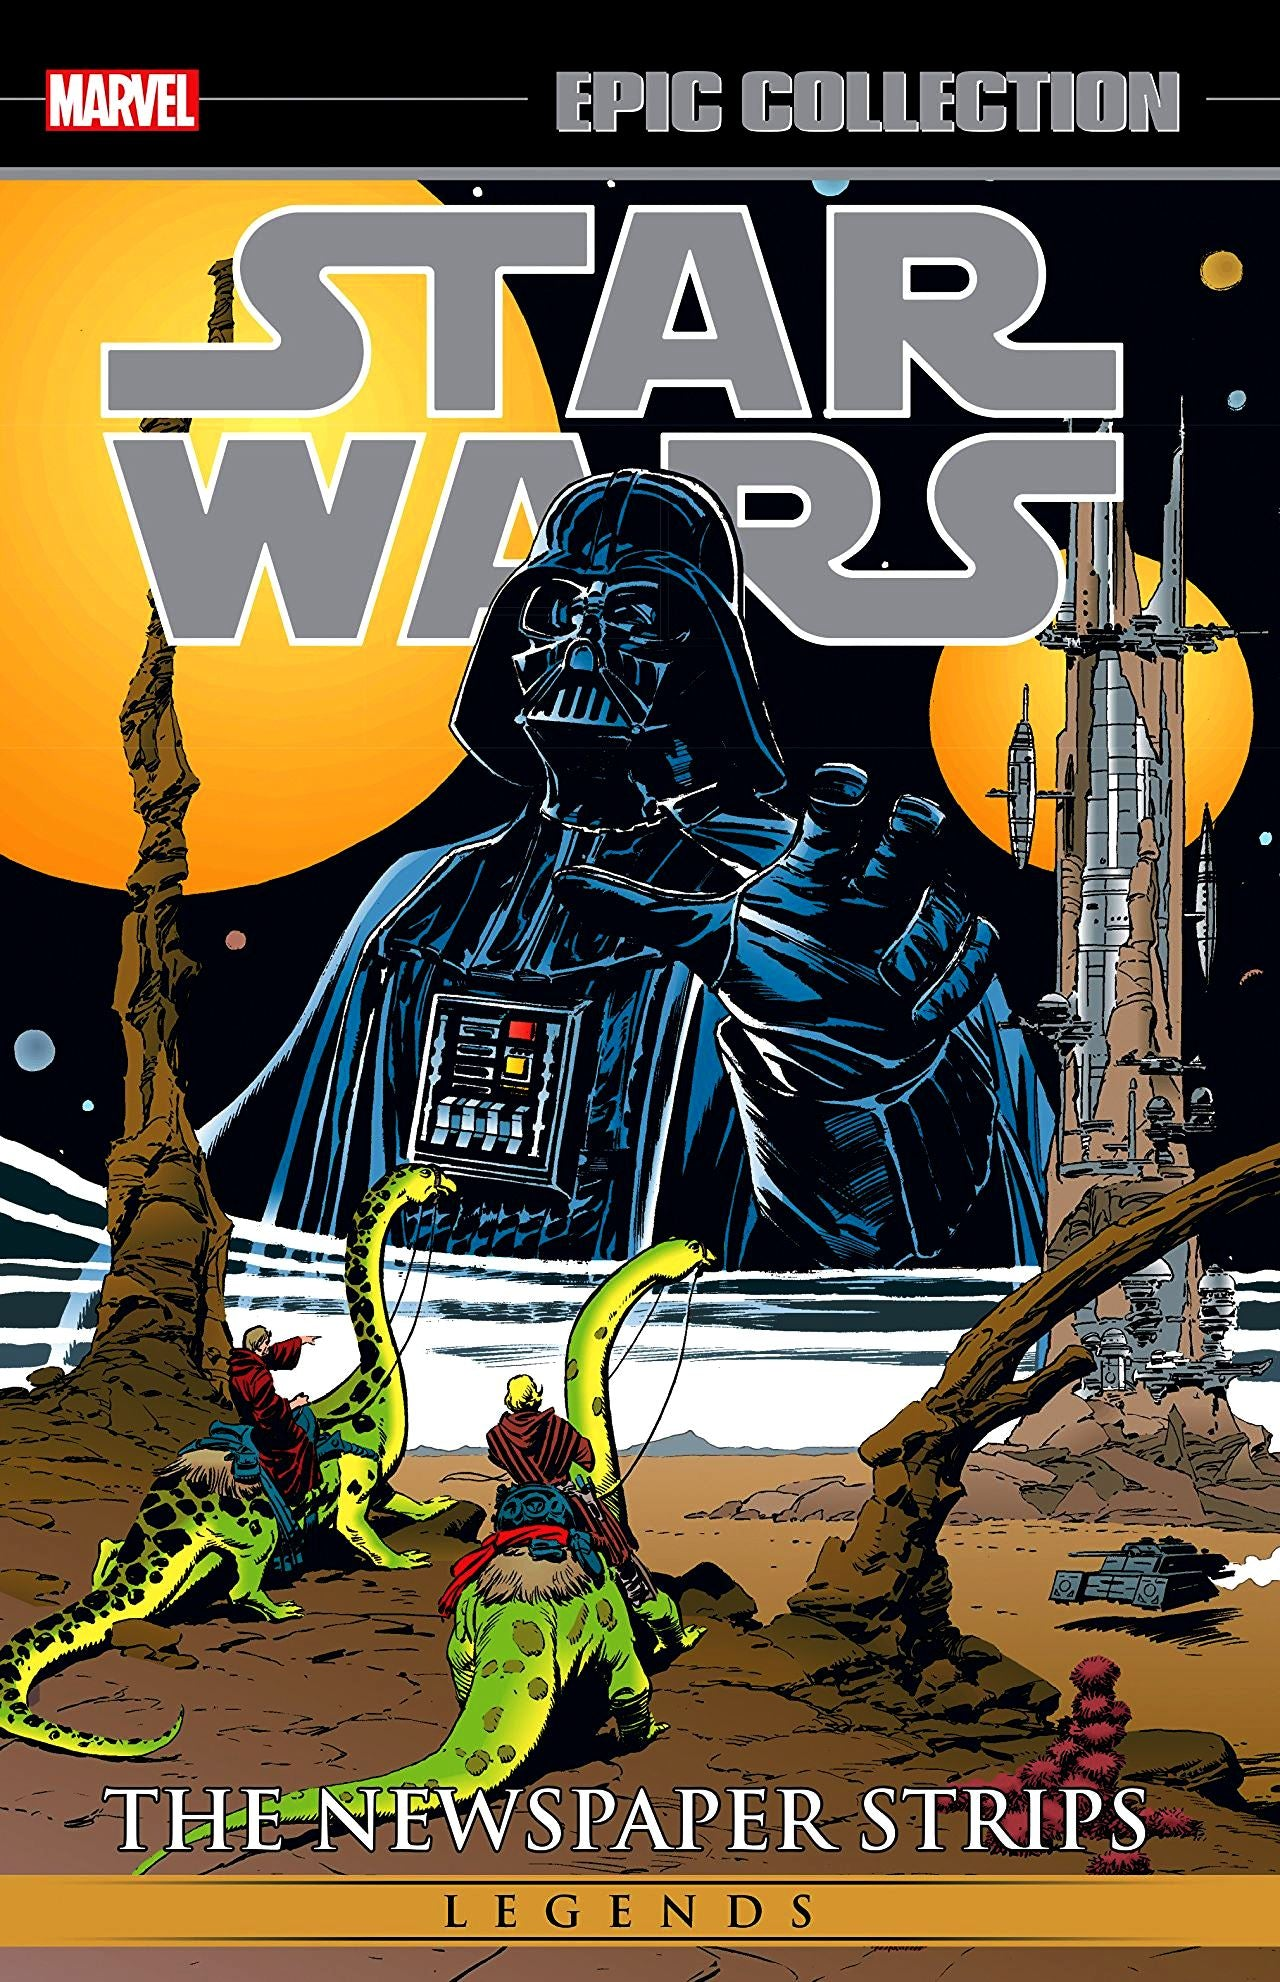 Star Wars Legends: The Newspaper Strips Volume 2 (Epic Collection)